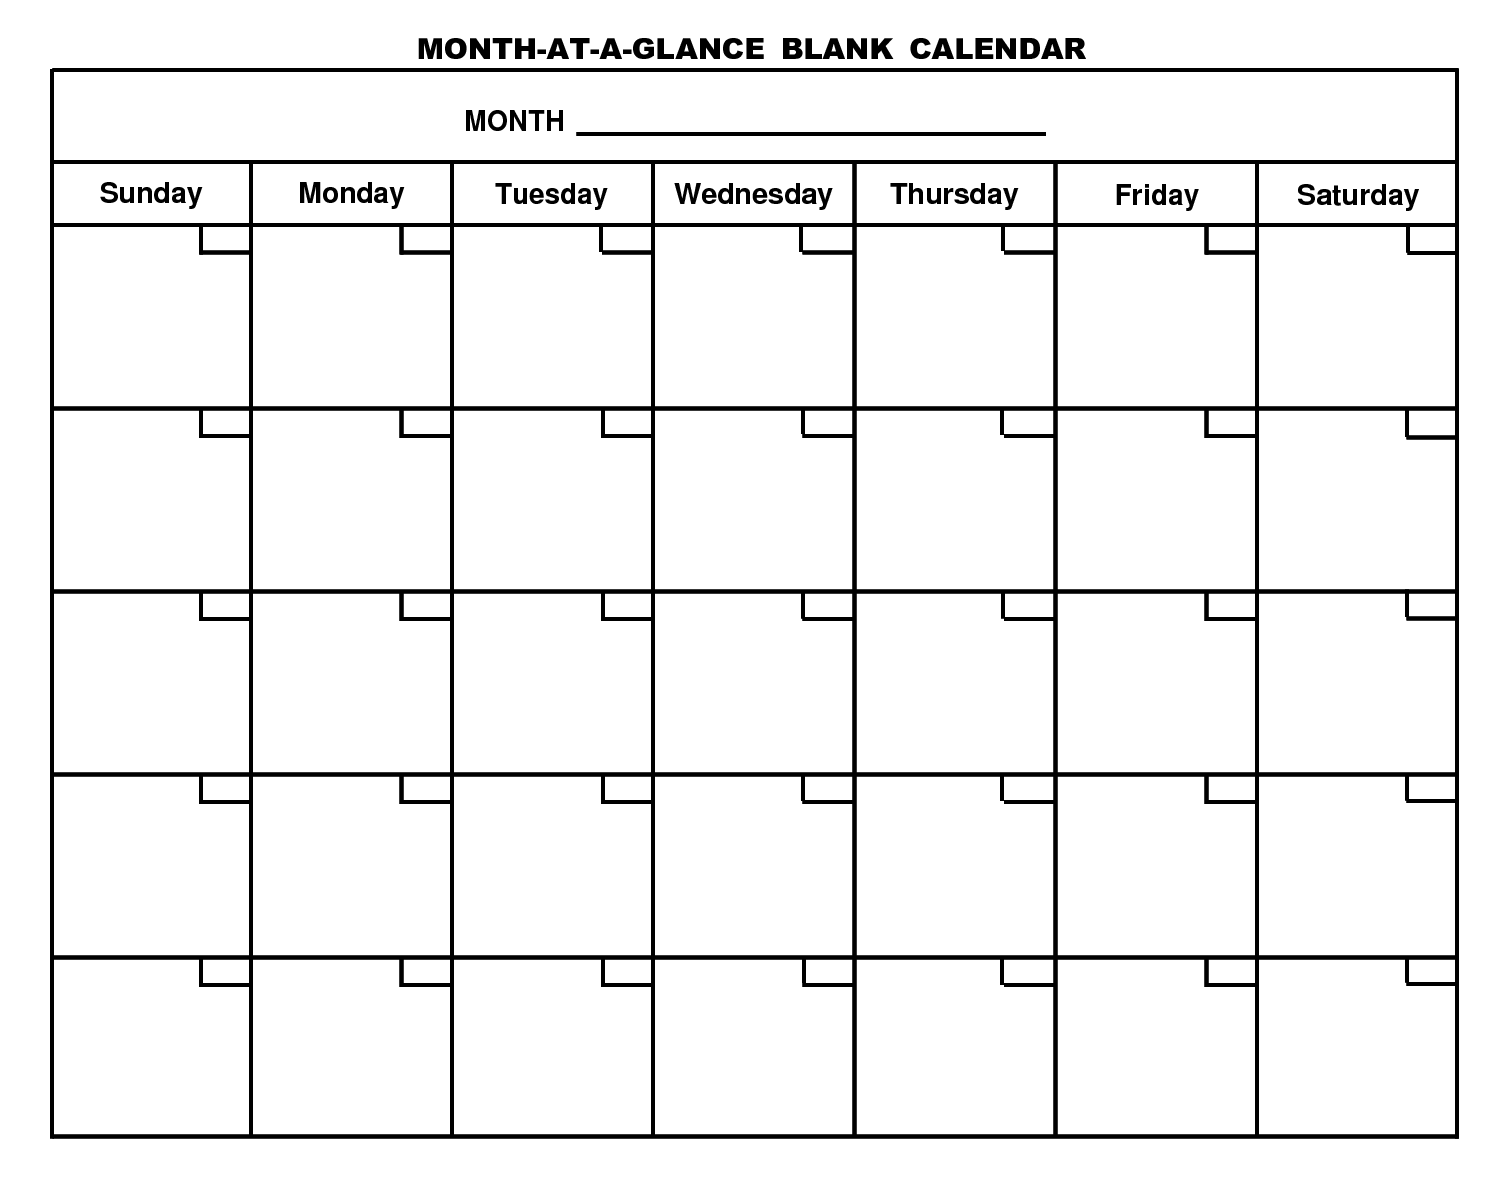 monthly schedule calendar template koni polycode co